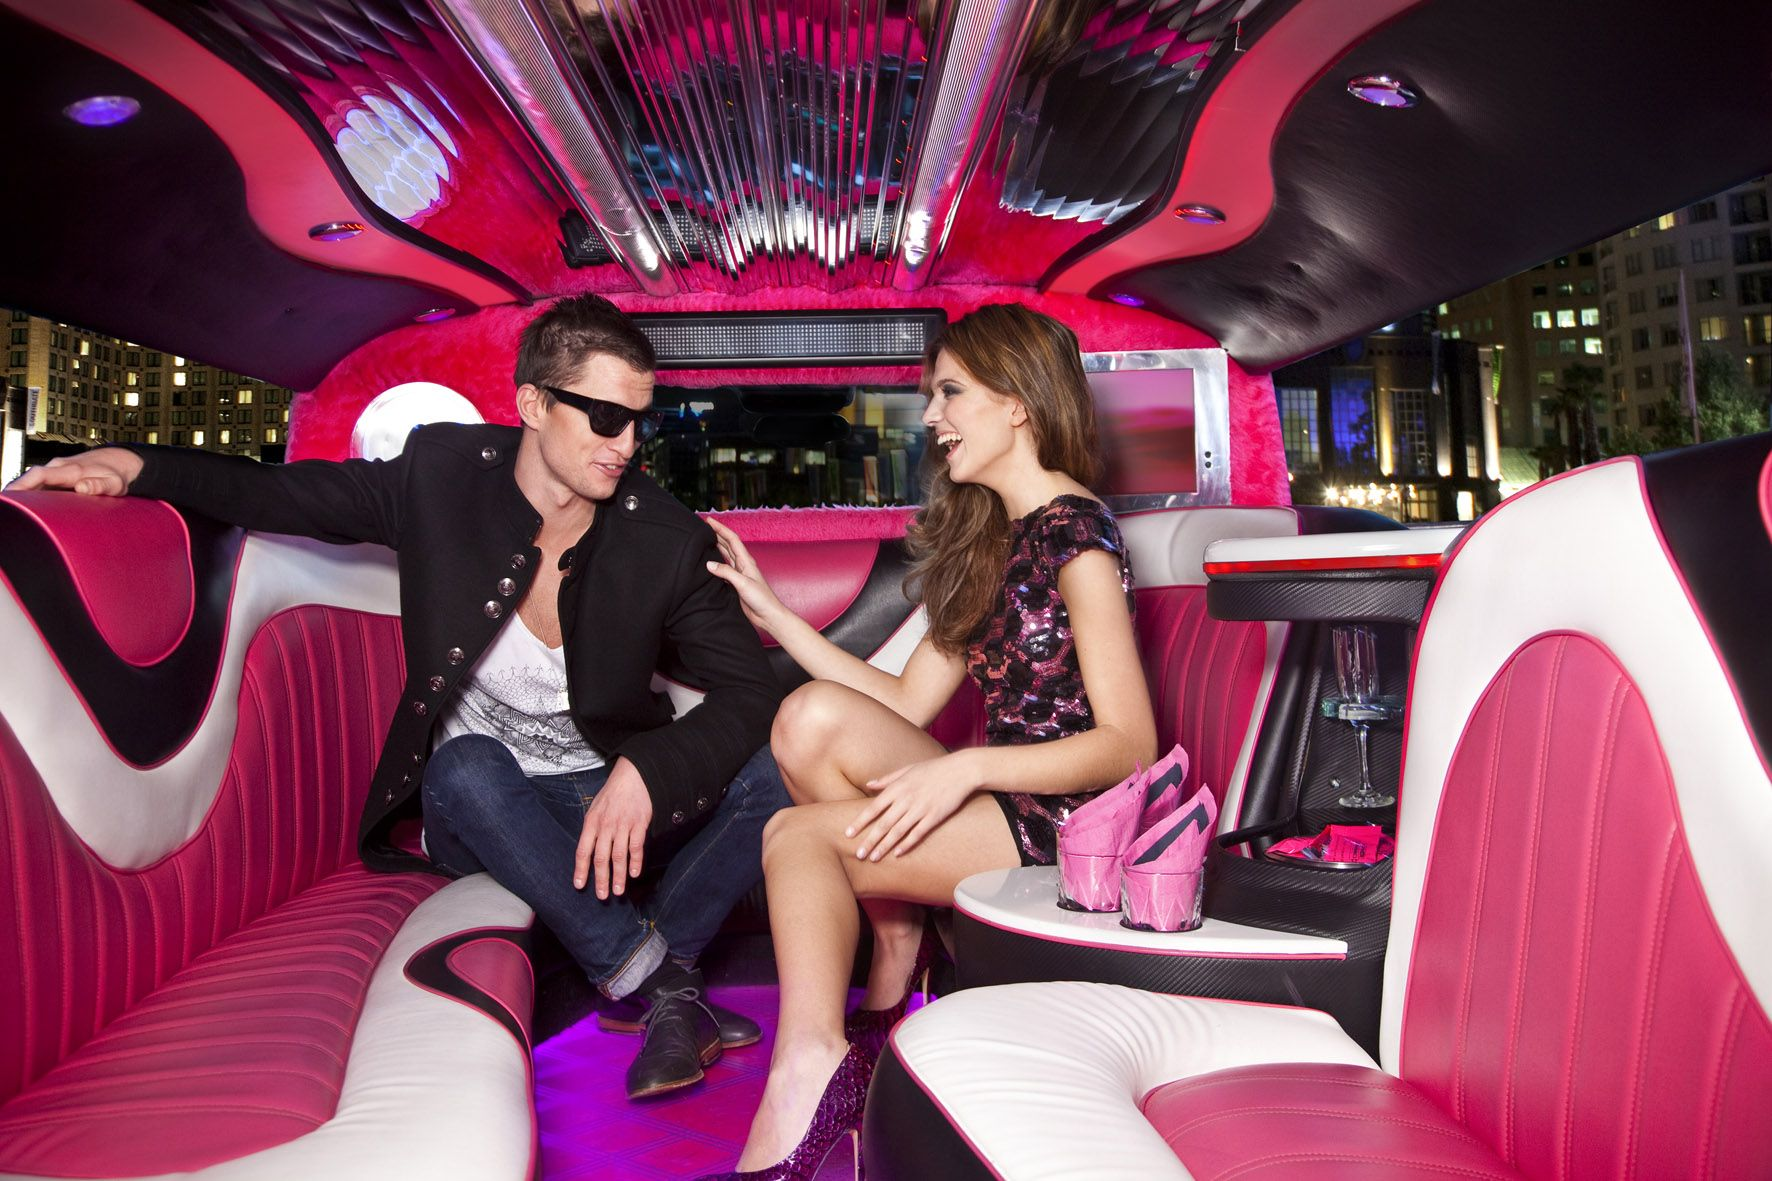 Car interior necessities - We Give Awesome Limo Organization In Raleigh North Carolina Organizations To The Plane Terminal